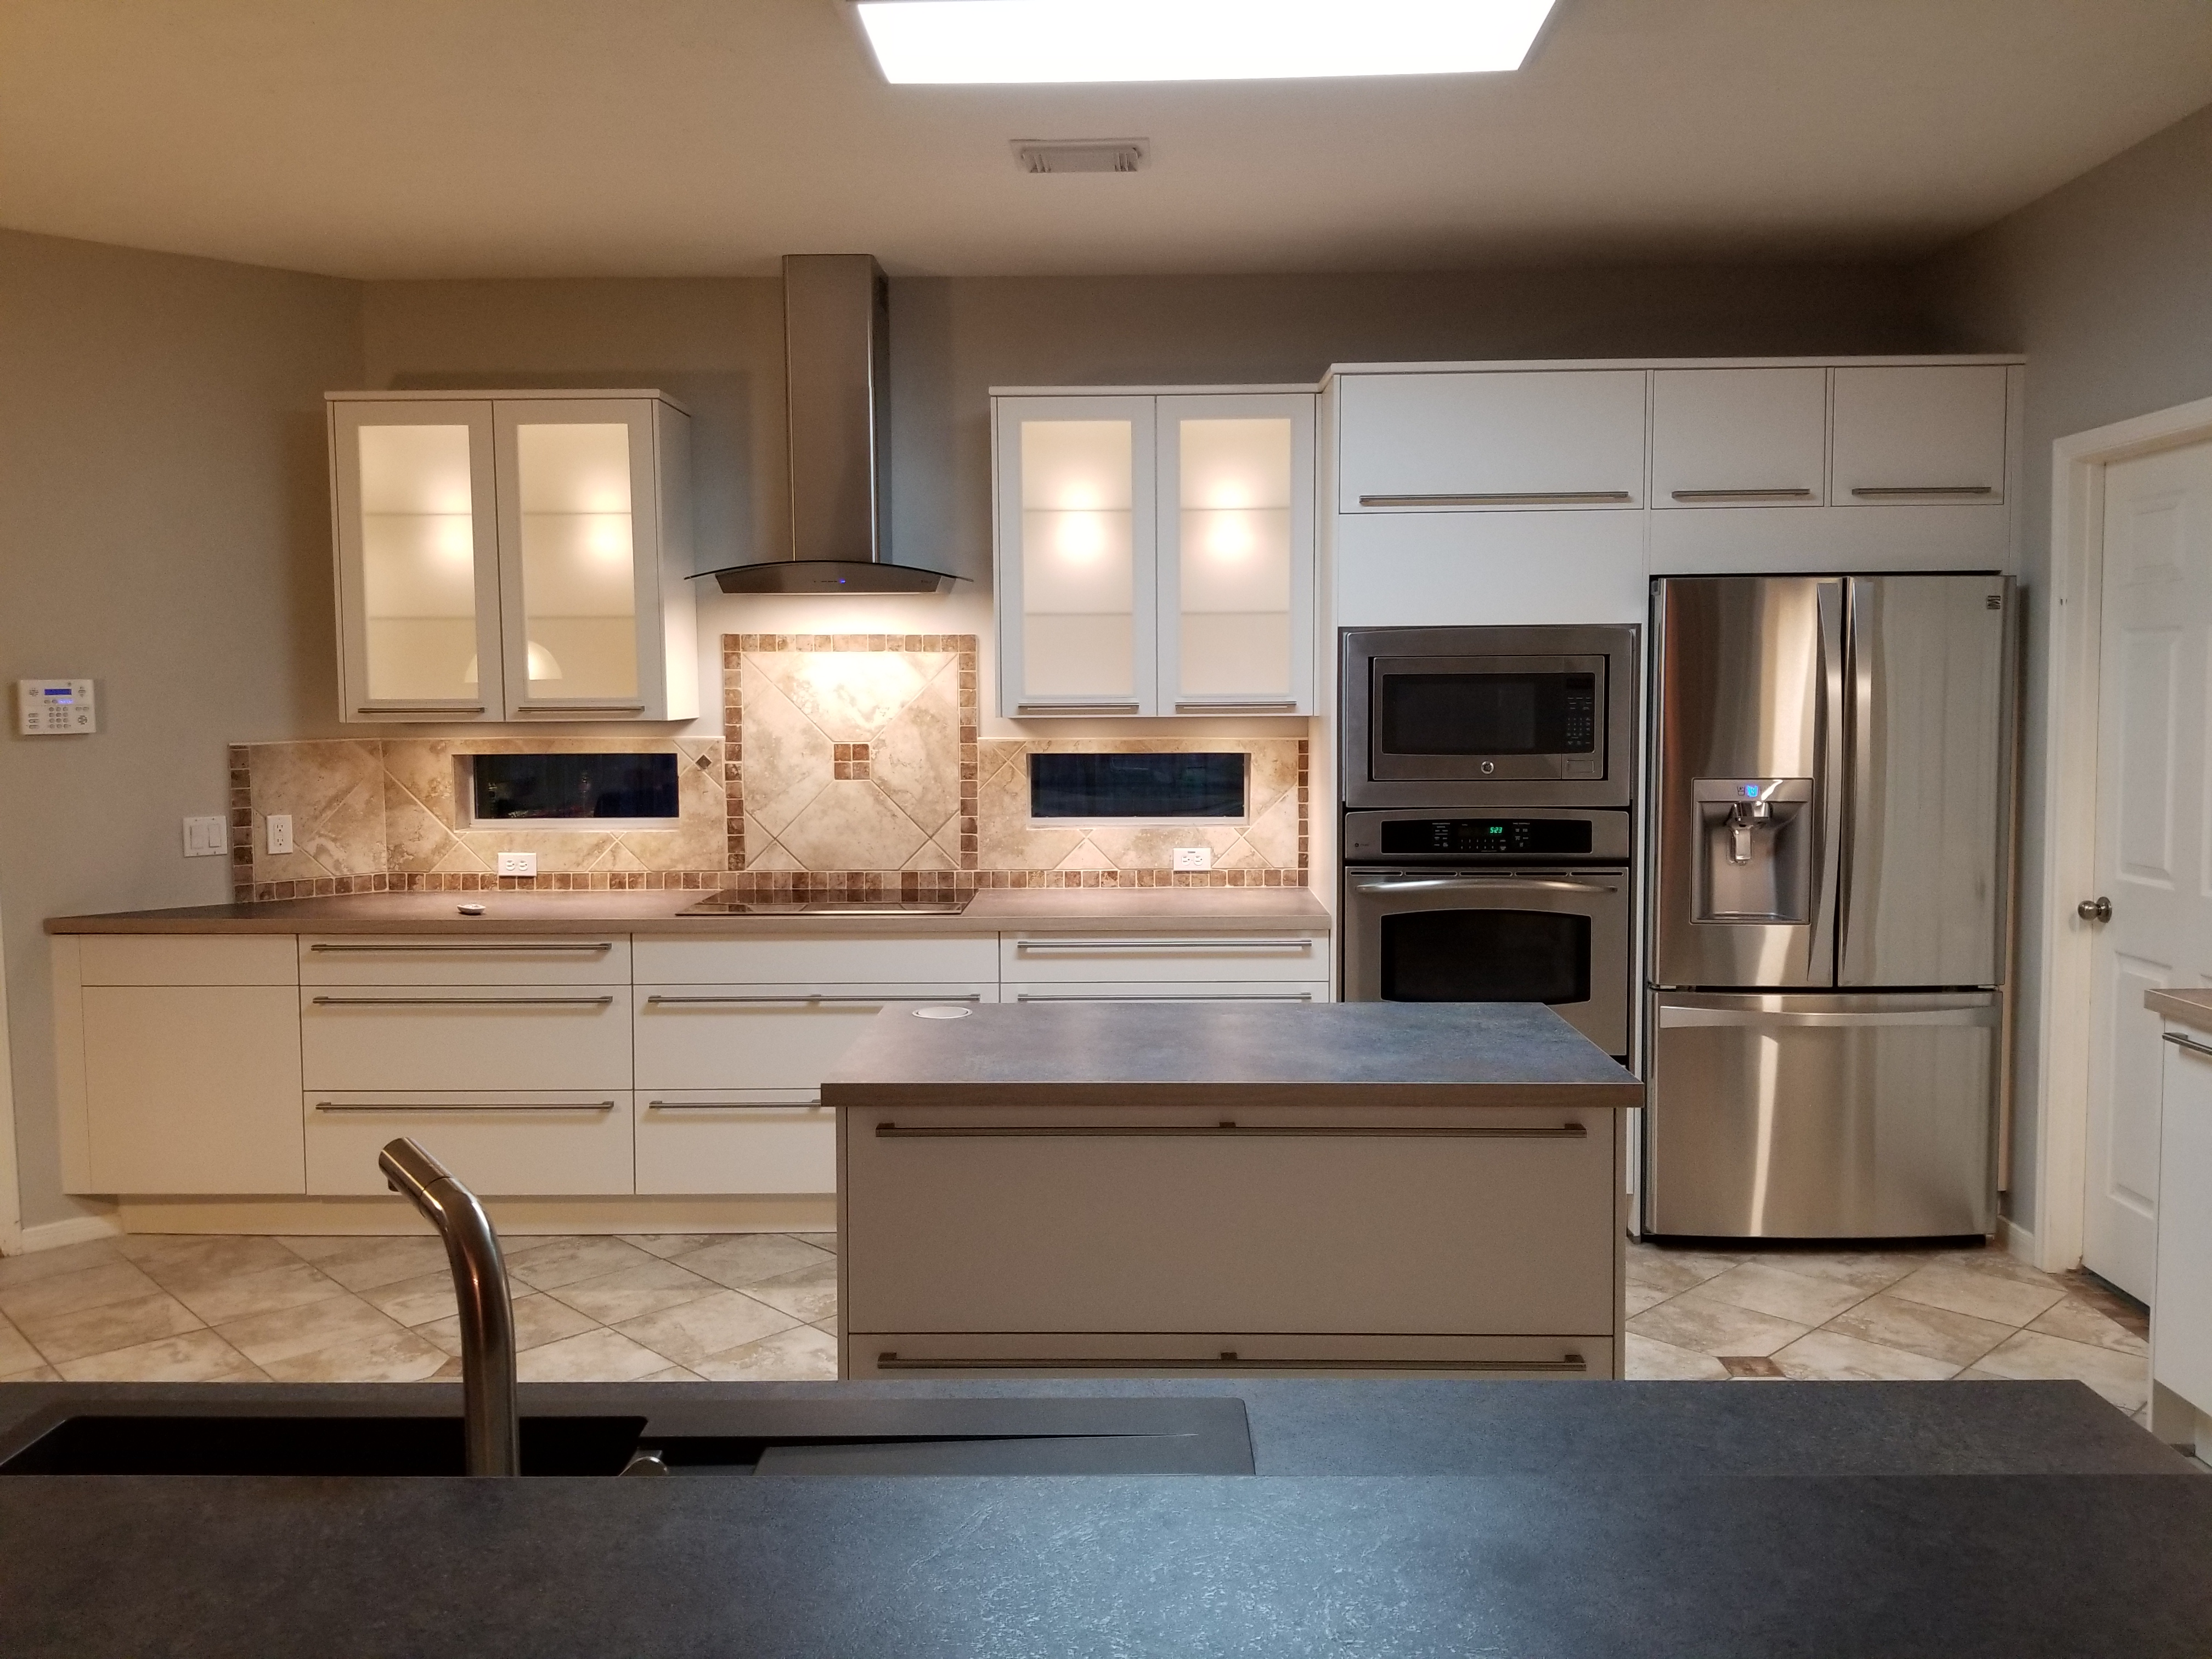 Kitchen remodeling in Katy, TX